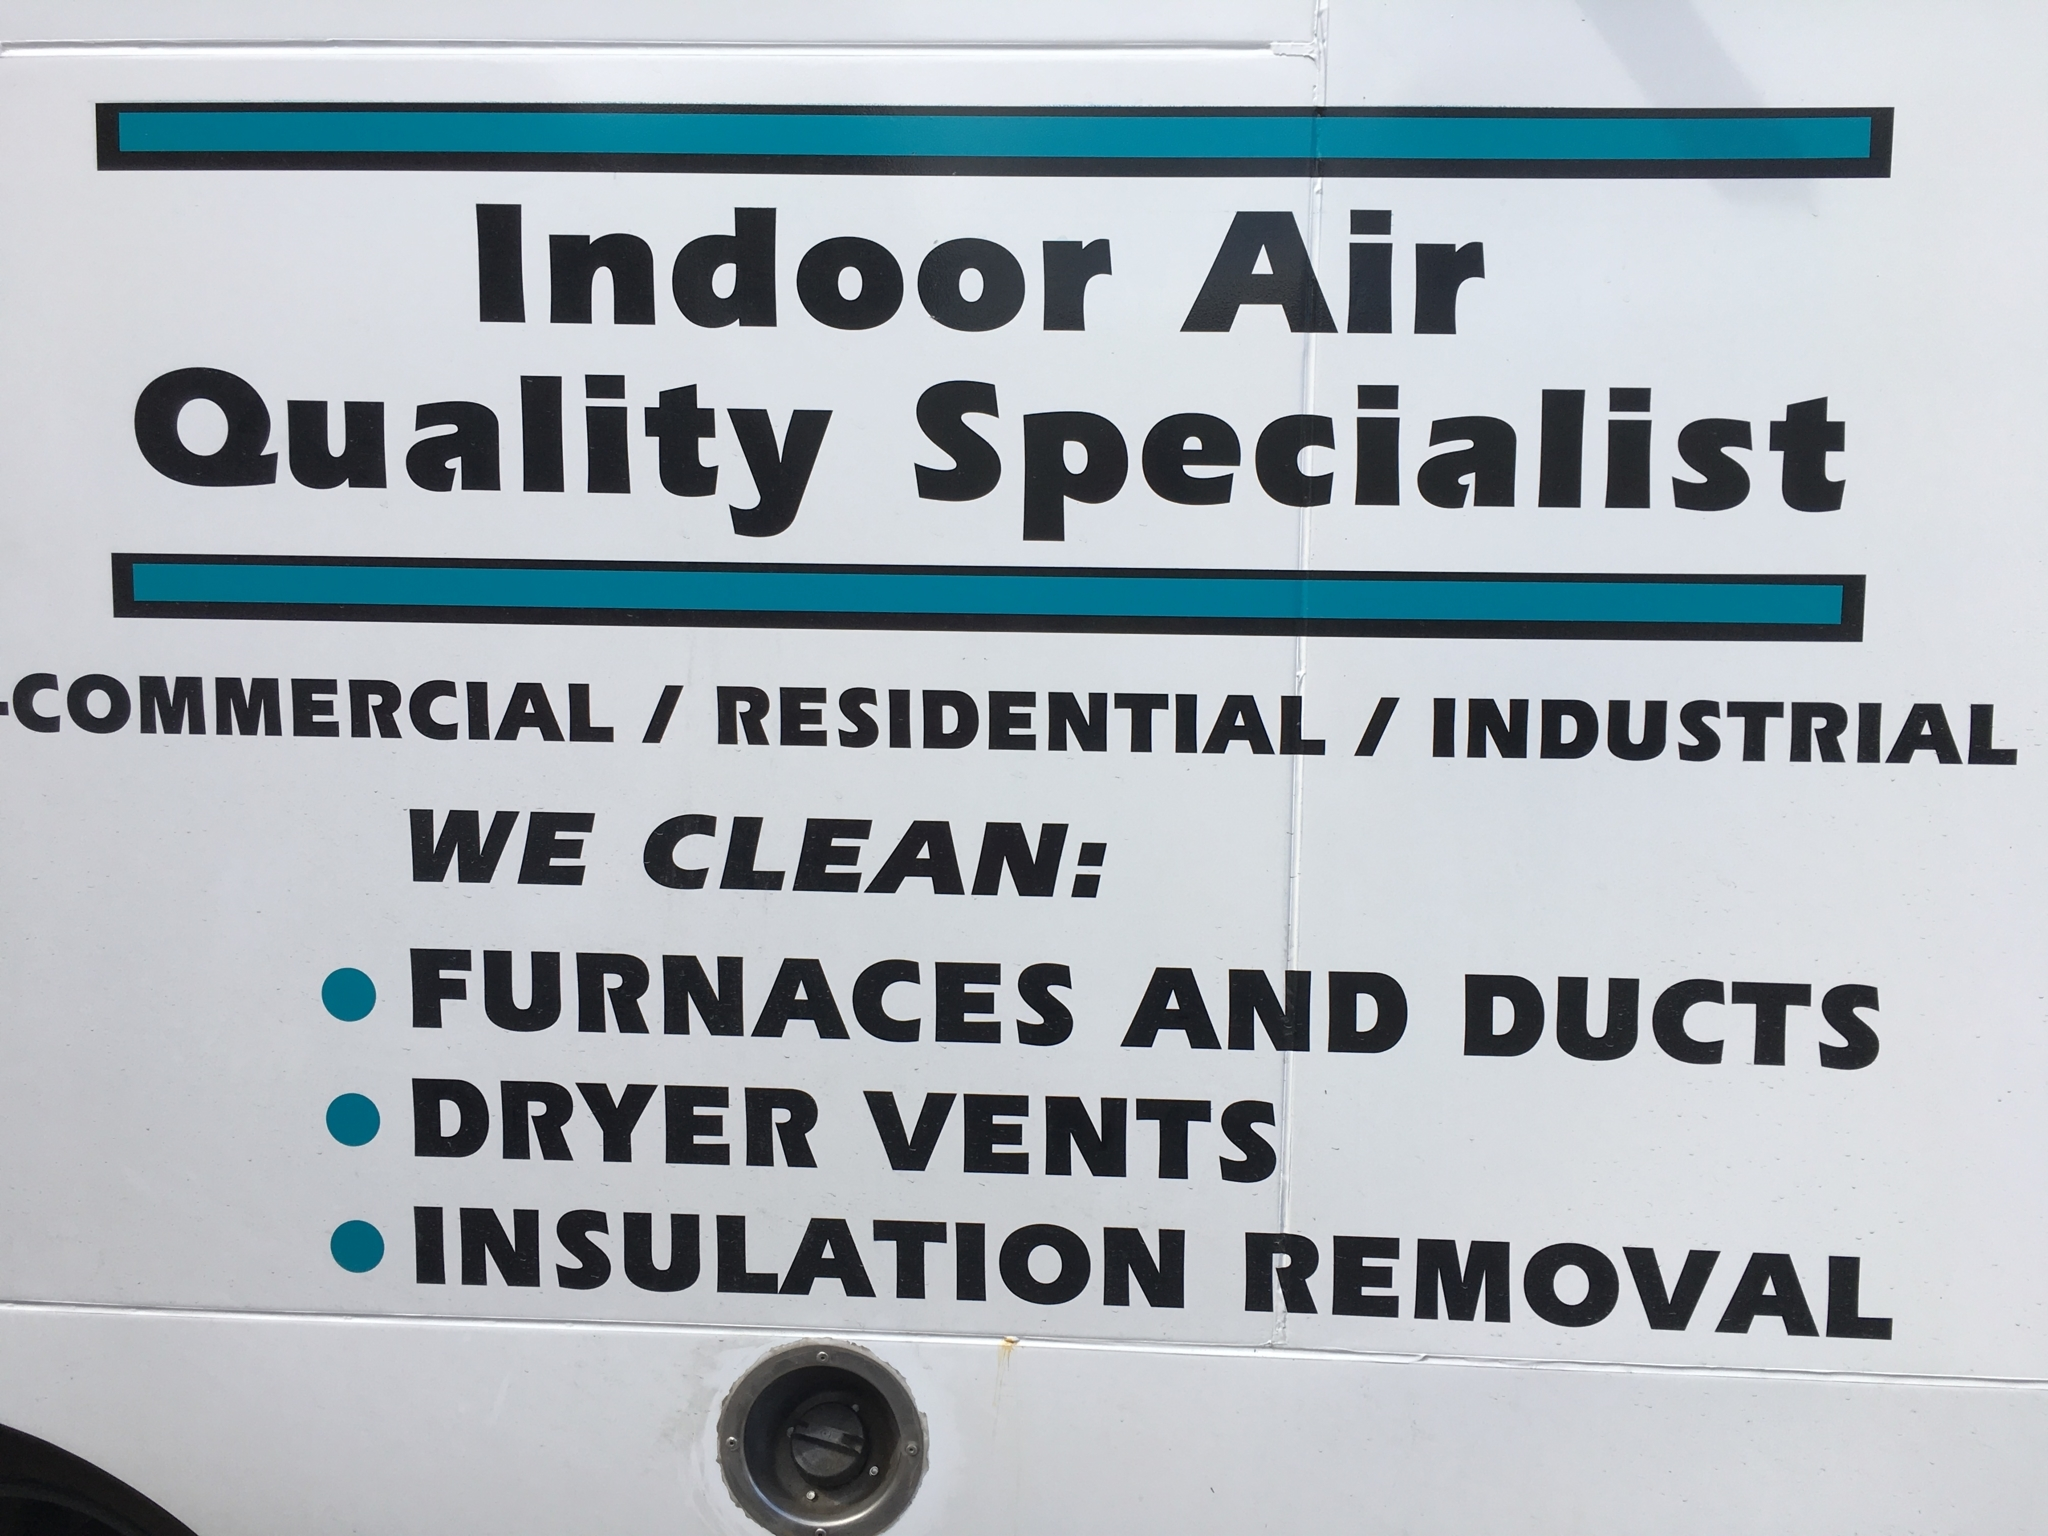 Kleen Aire Services in Williams Lake: We clean Furnaces, Ducts, Dryer Vents and provide Insulation Removal Services